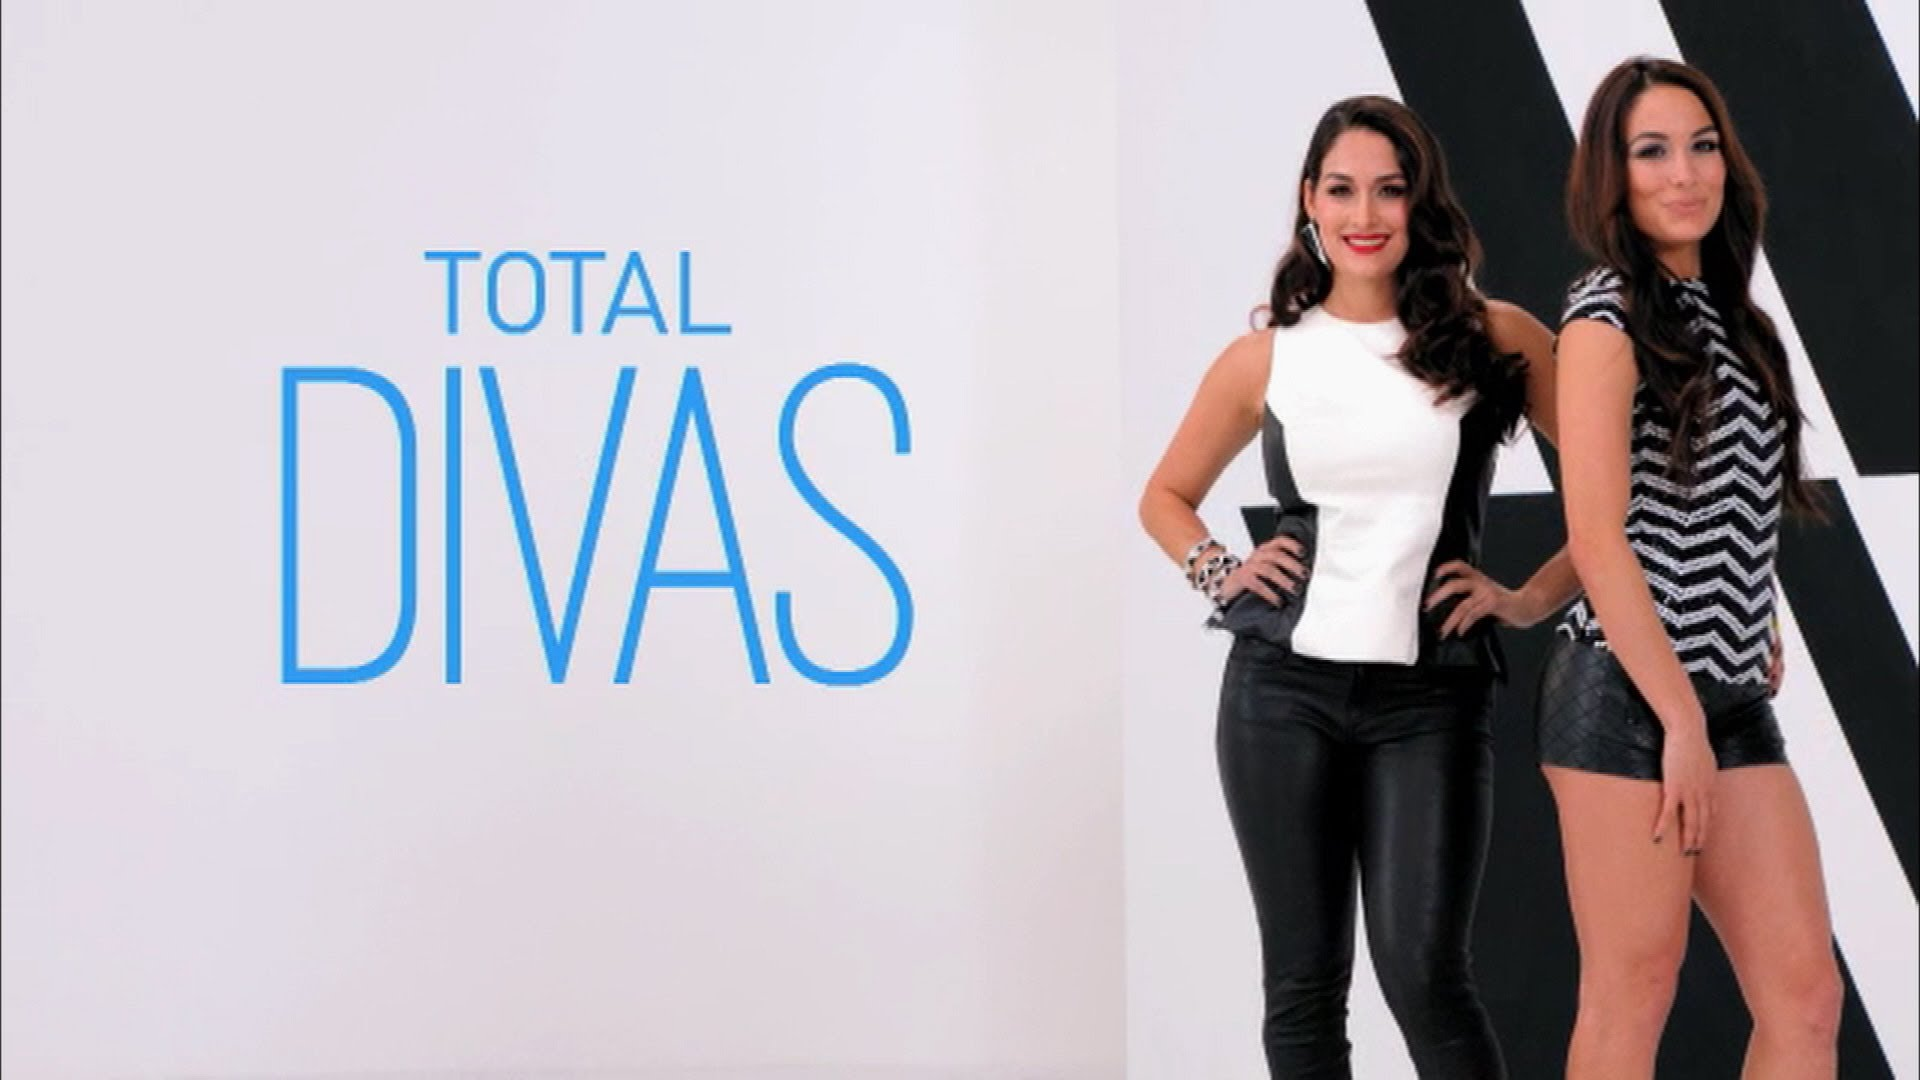 WWE Total Divas Wallpaper   HD Wallpapers Backgrounds of Your Choice 1920x1080